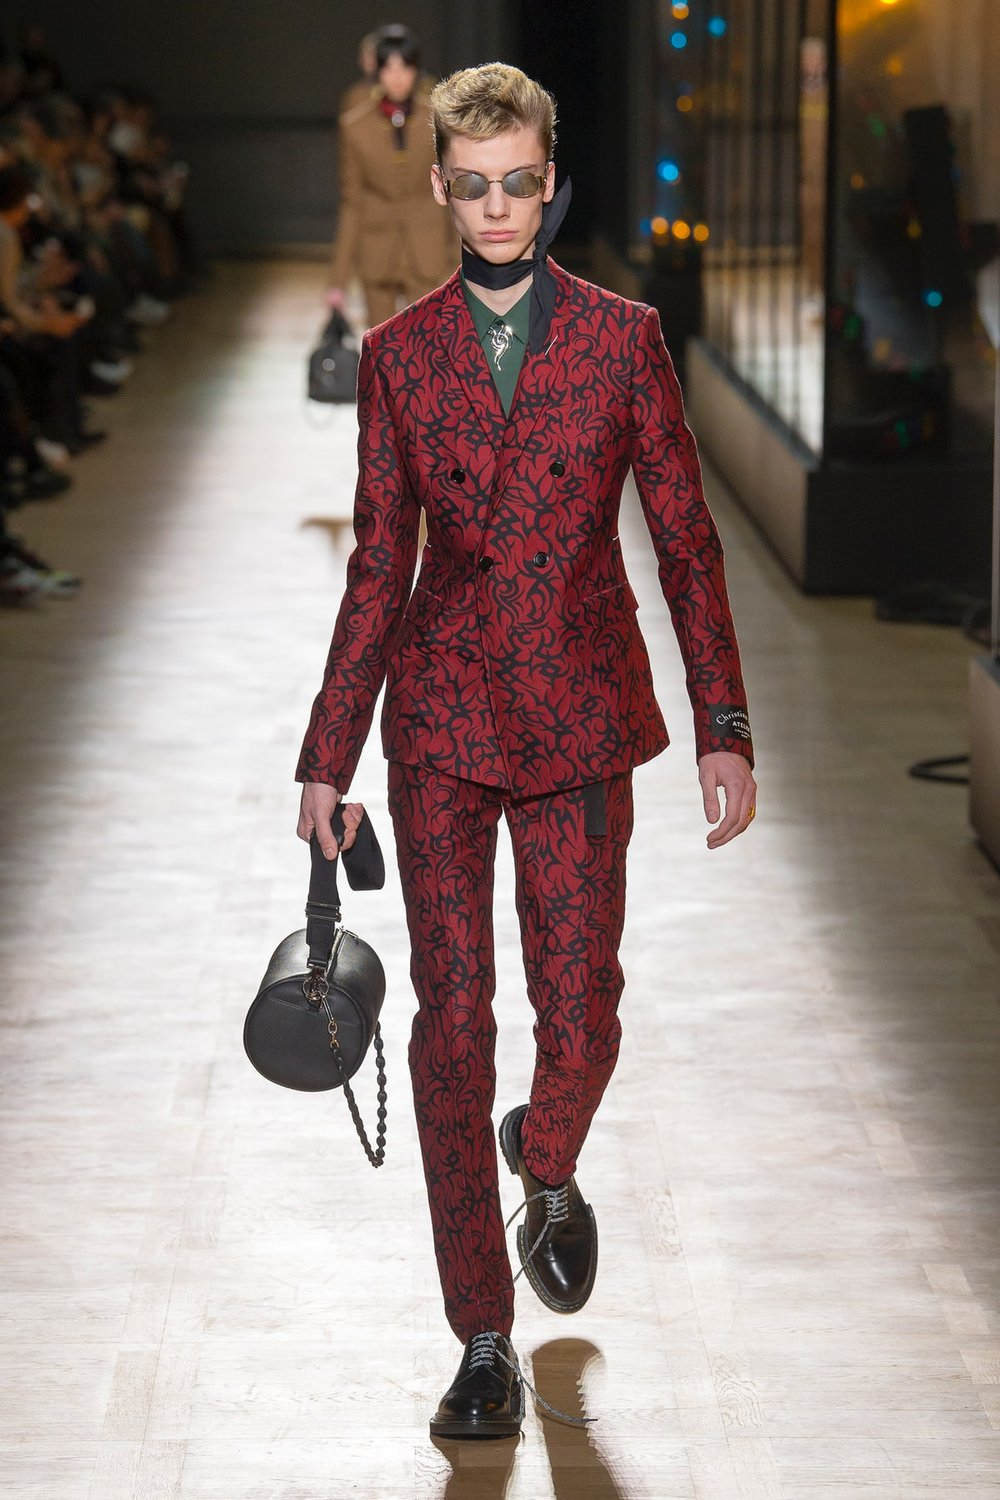 dior_homme_look_28_menswear_autumn_2018.jpeg